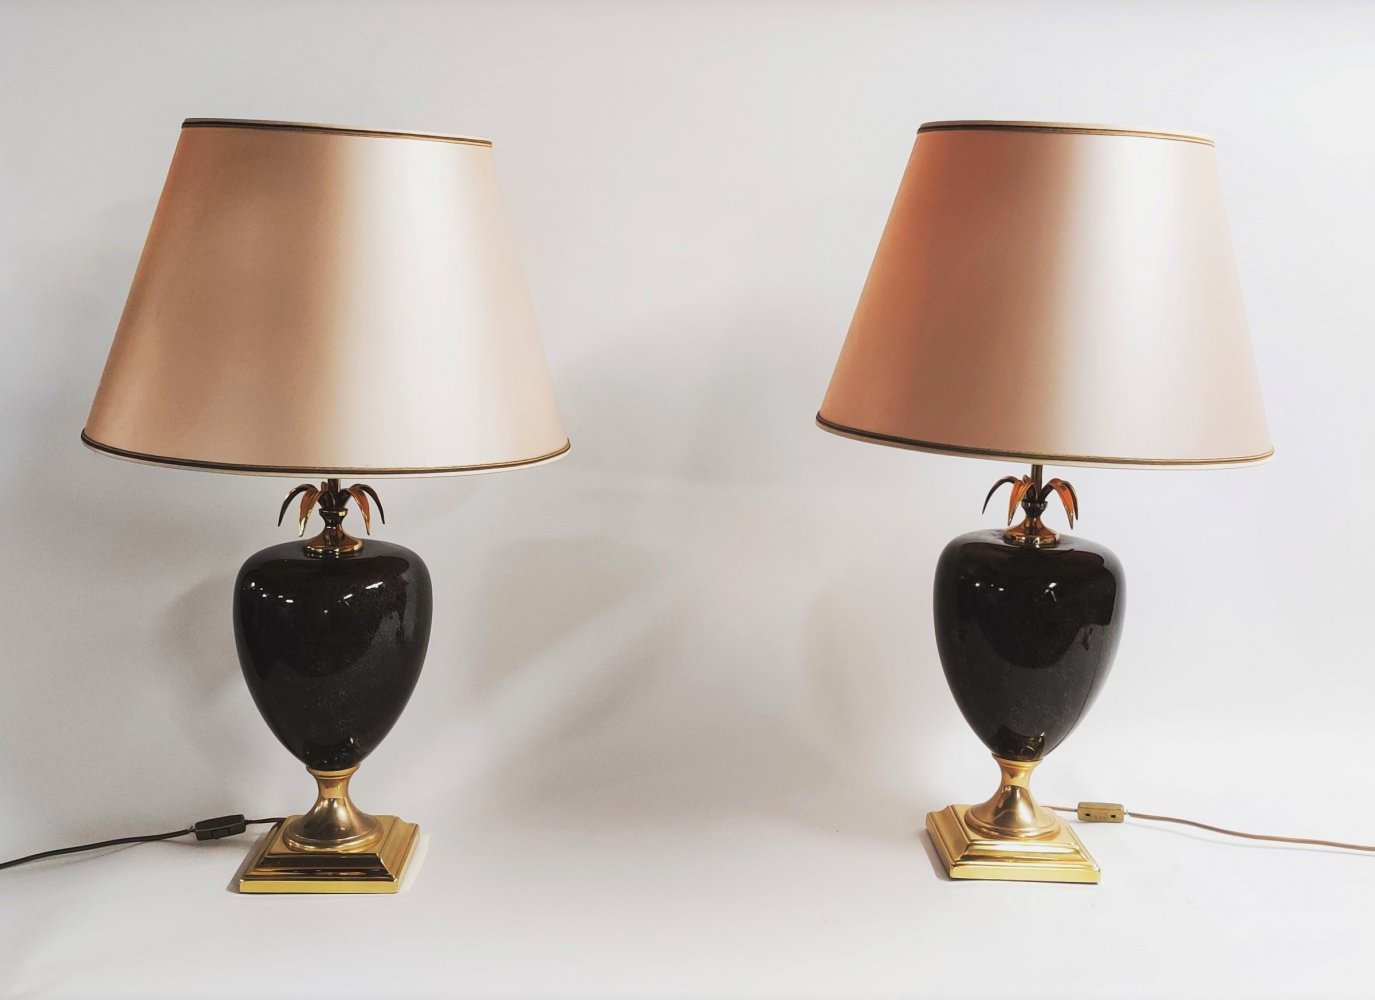 Vintage pineapple table lamps by Maison Le Dauphin, 1970s